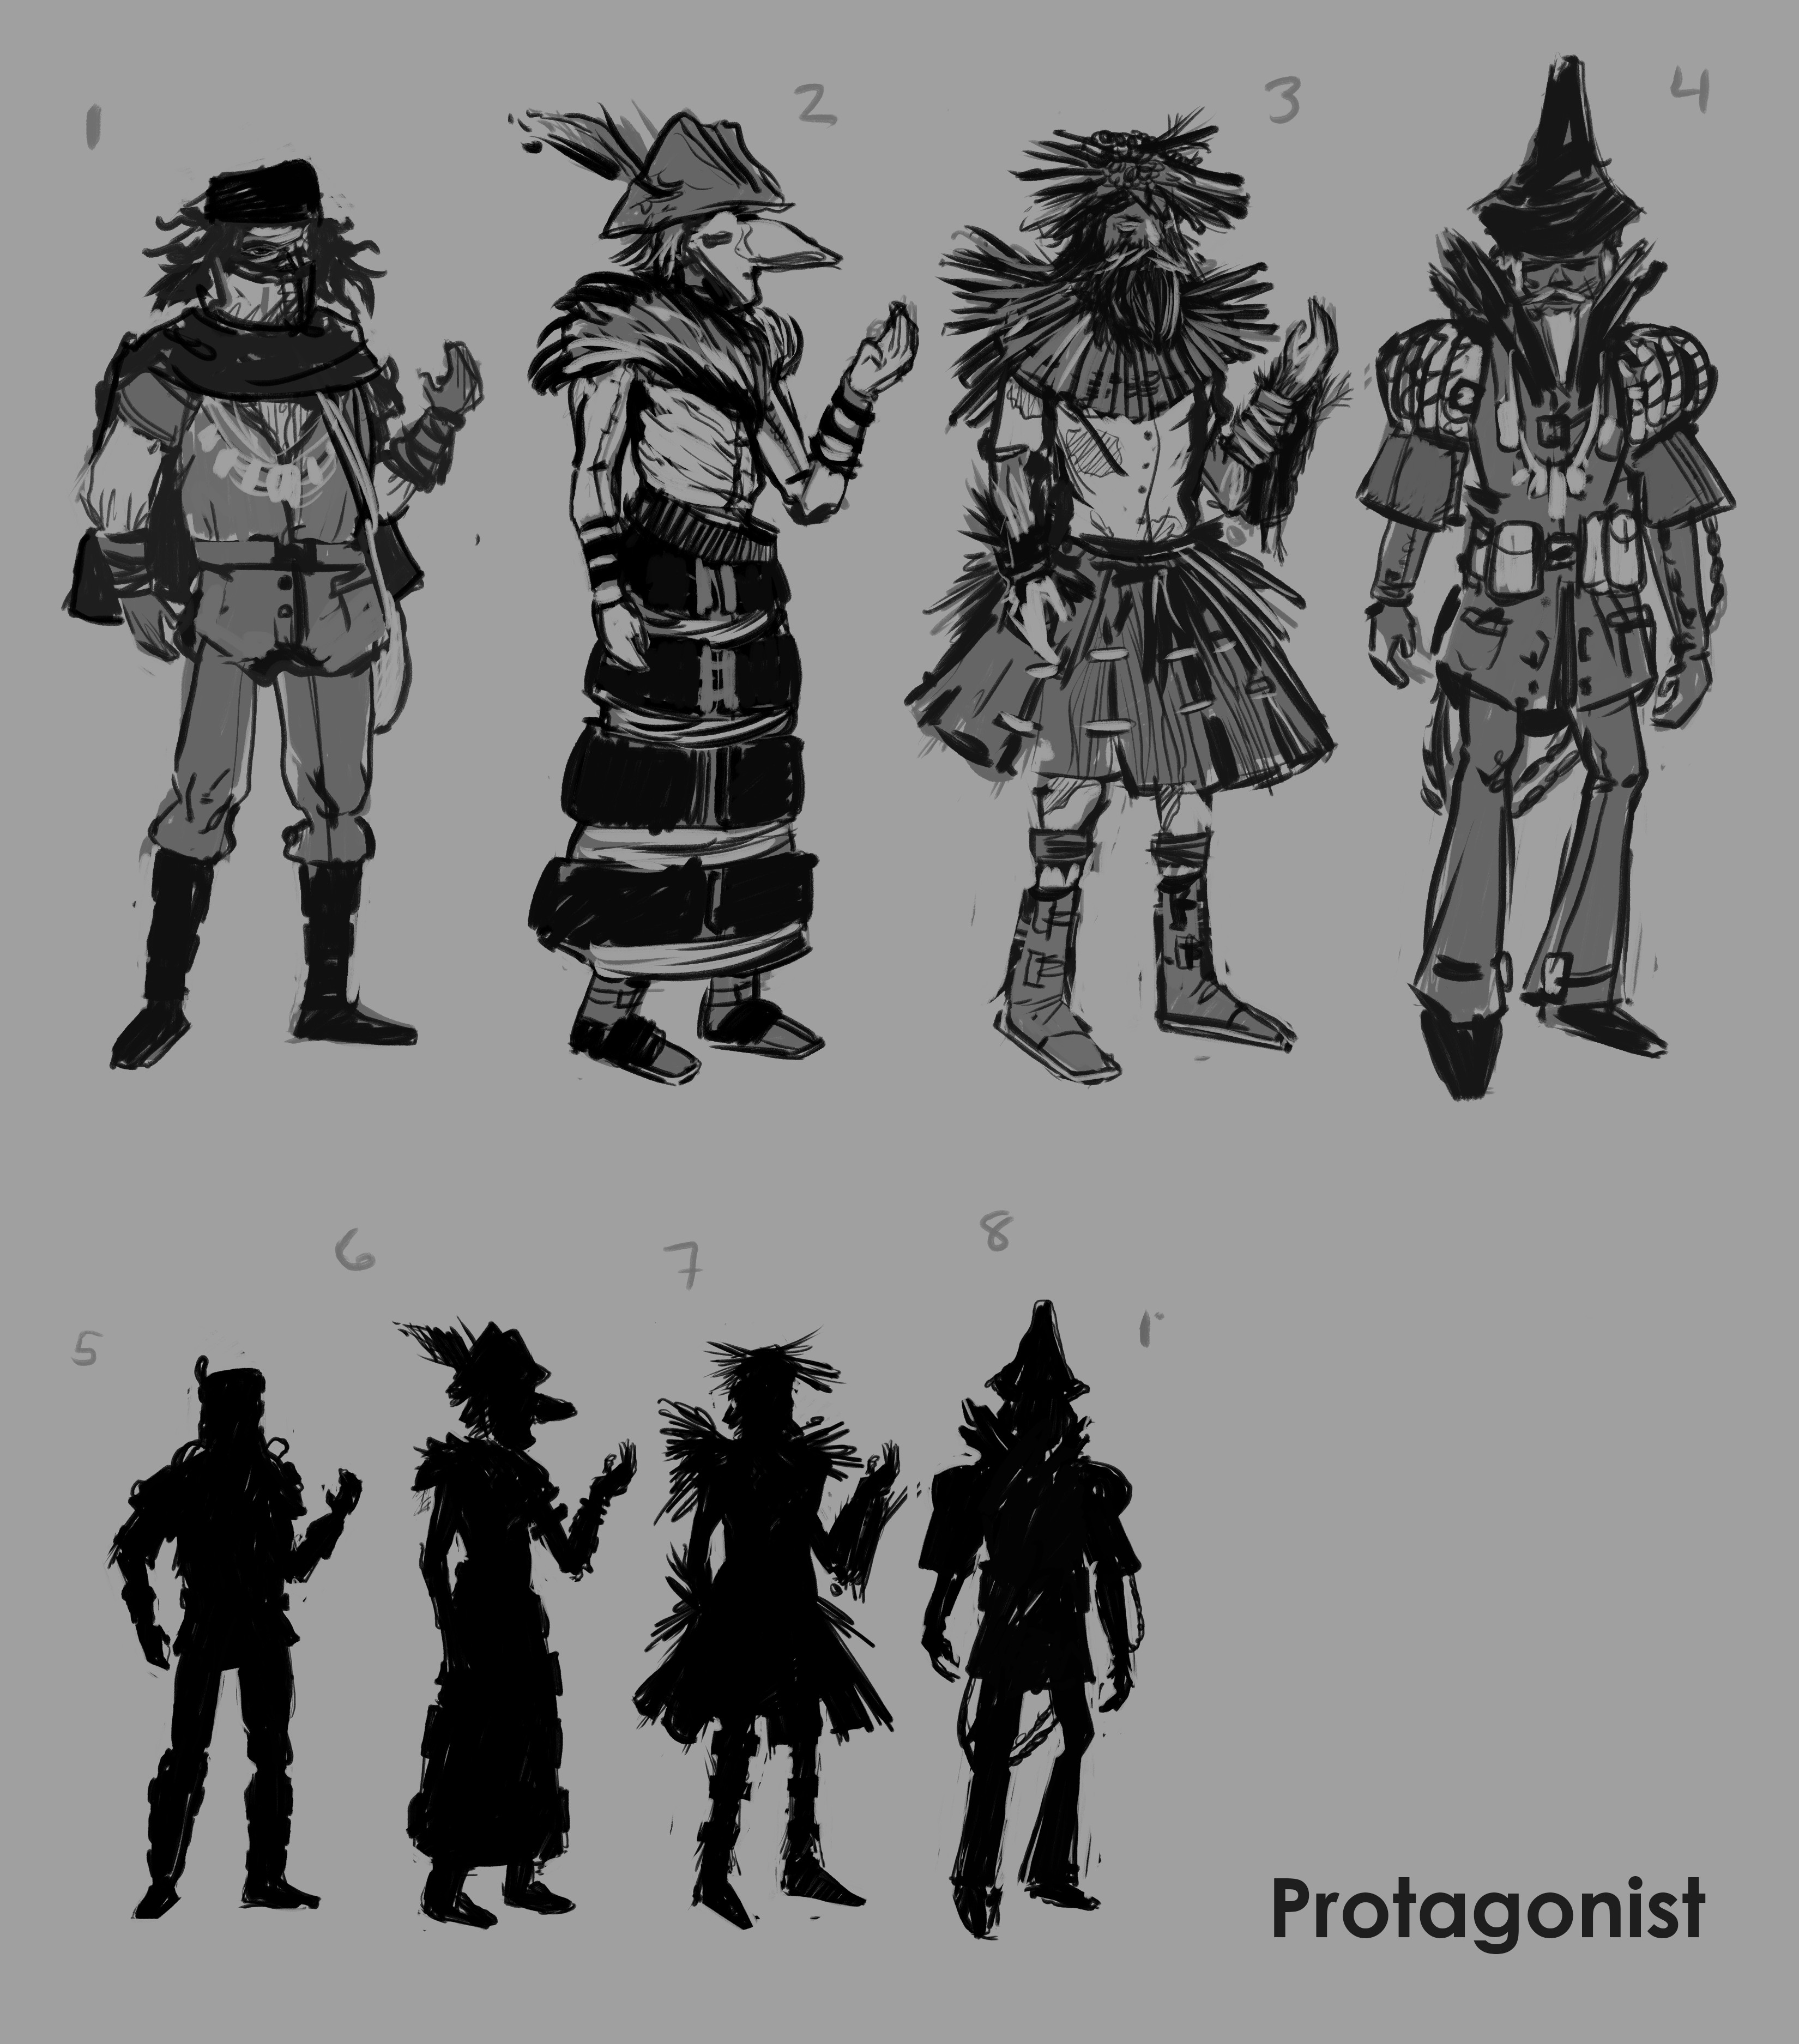 Protagonist concept sketches and silhouettes.